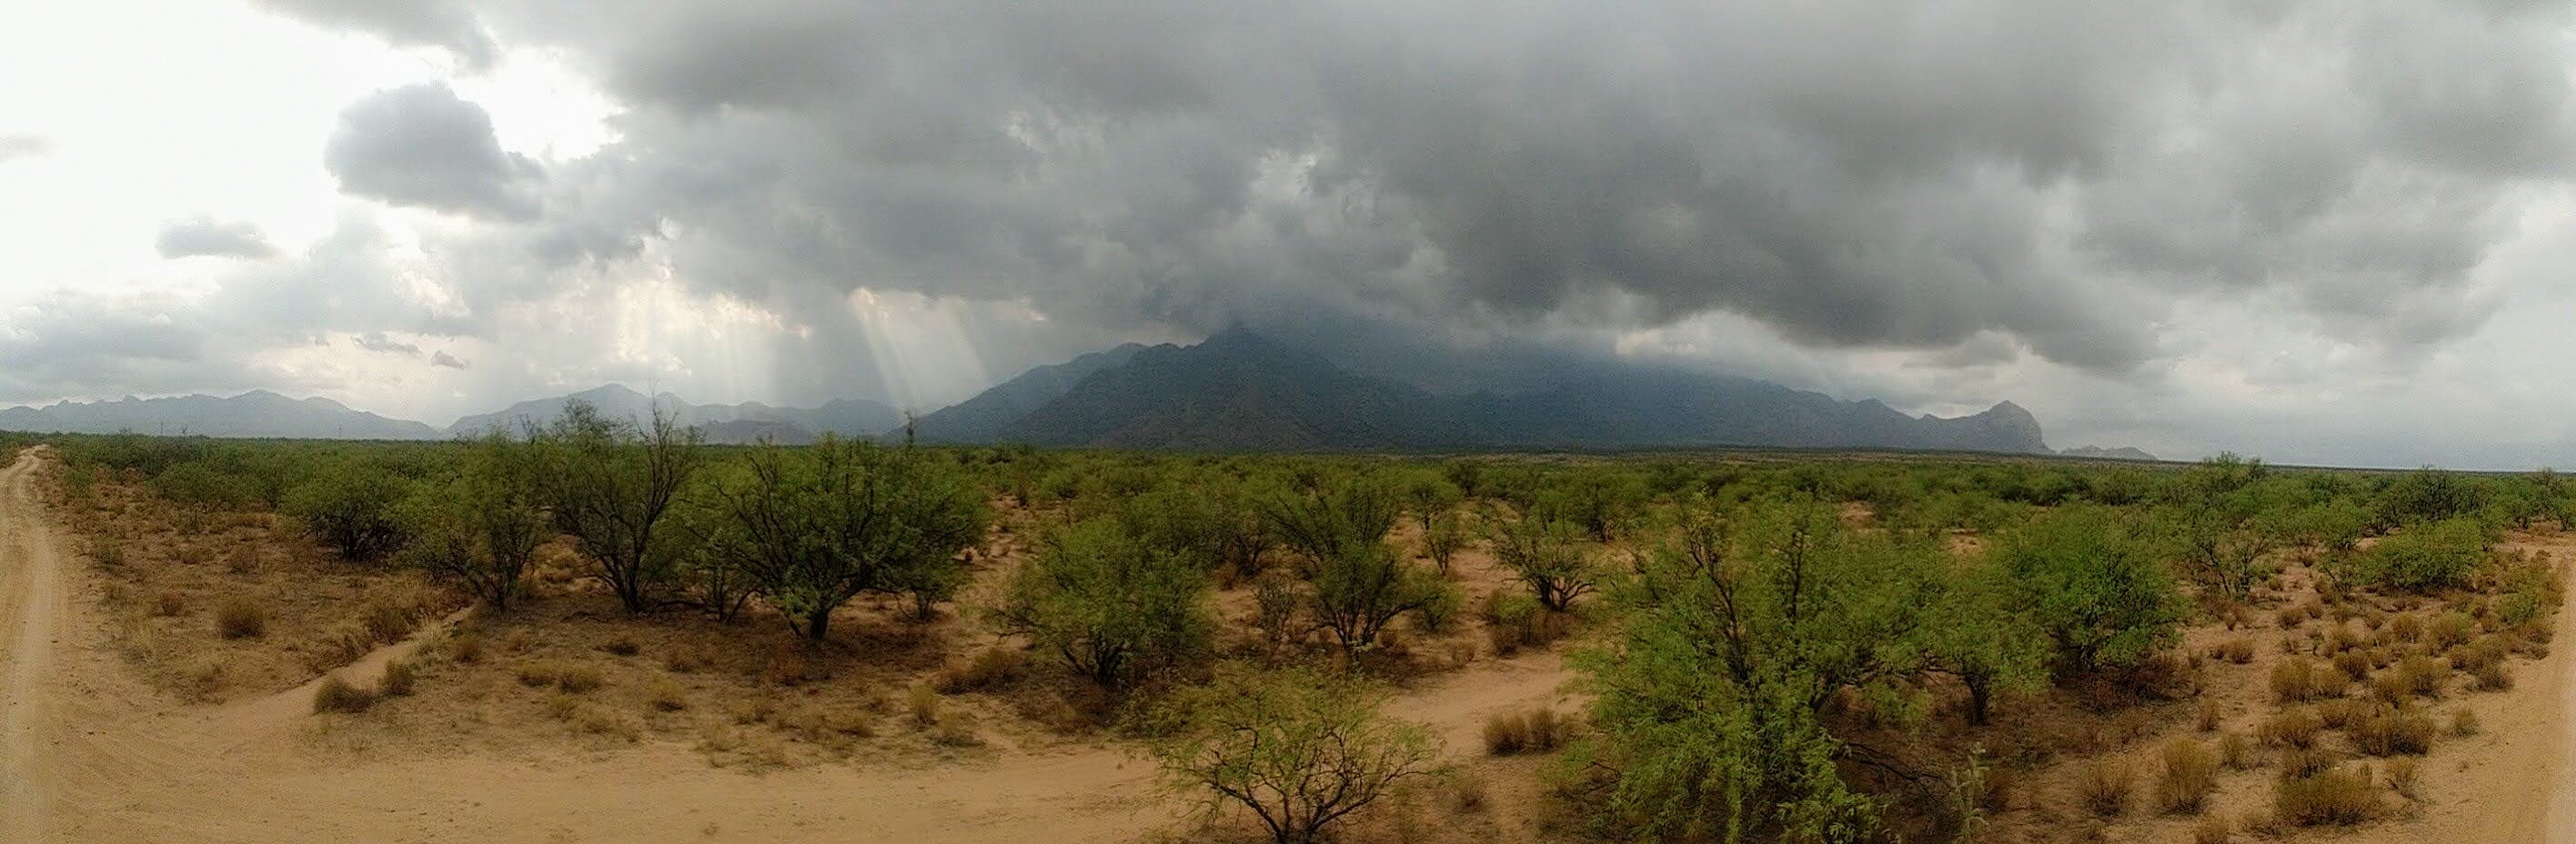 A monsoon storm rolls over distant mountains in the Arizona desert